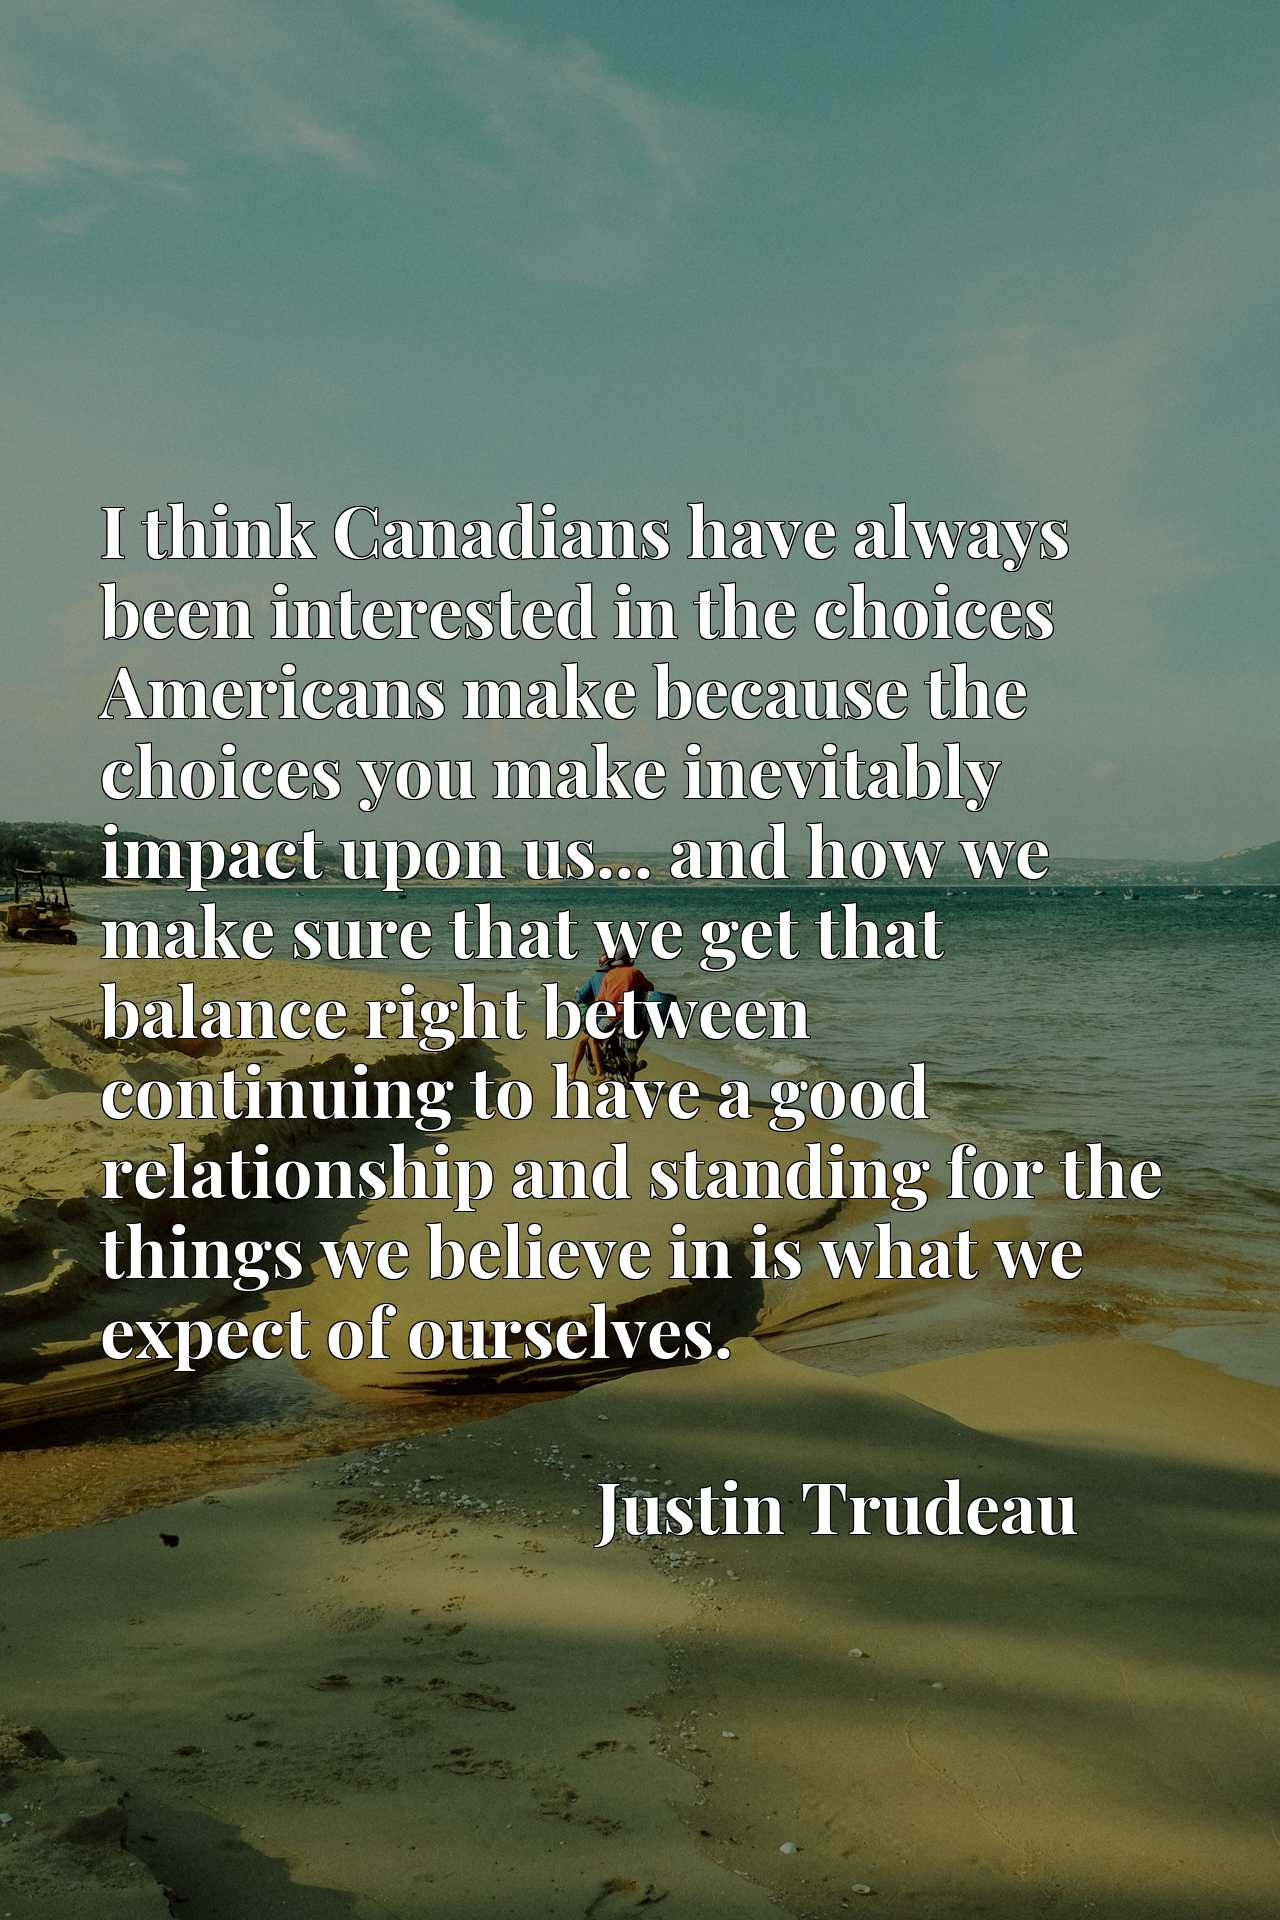 I think Canadians have always been interested in the choices Americans make because the choices you make inevitably impact upon us... and how we make sure that we get that balance right between continuing to have a good relationship and standing for the things we believe in is what we expect of ourselves.